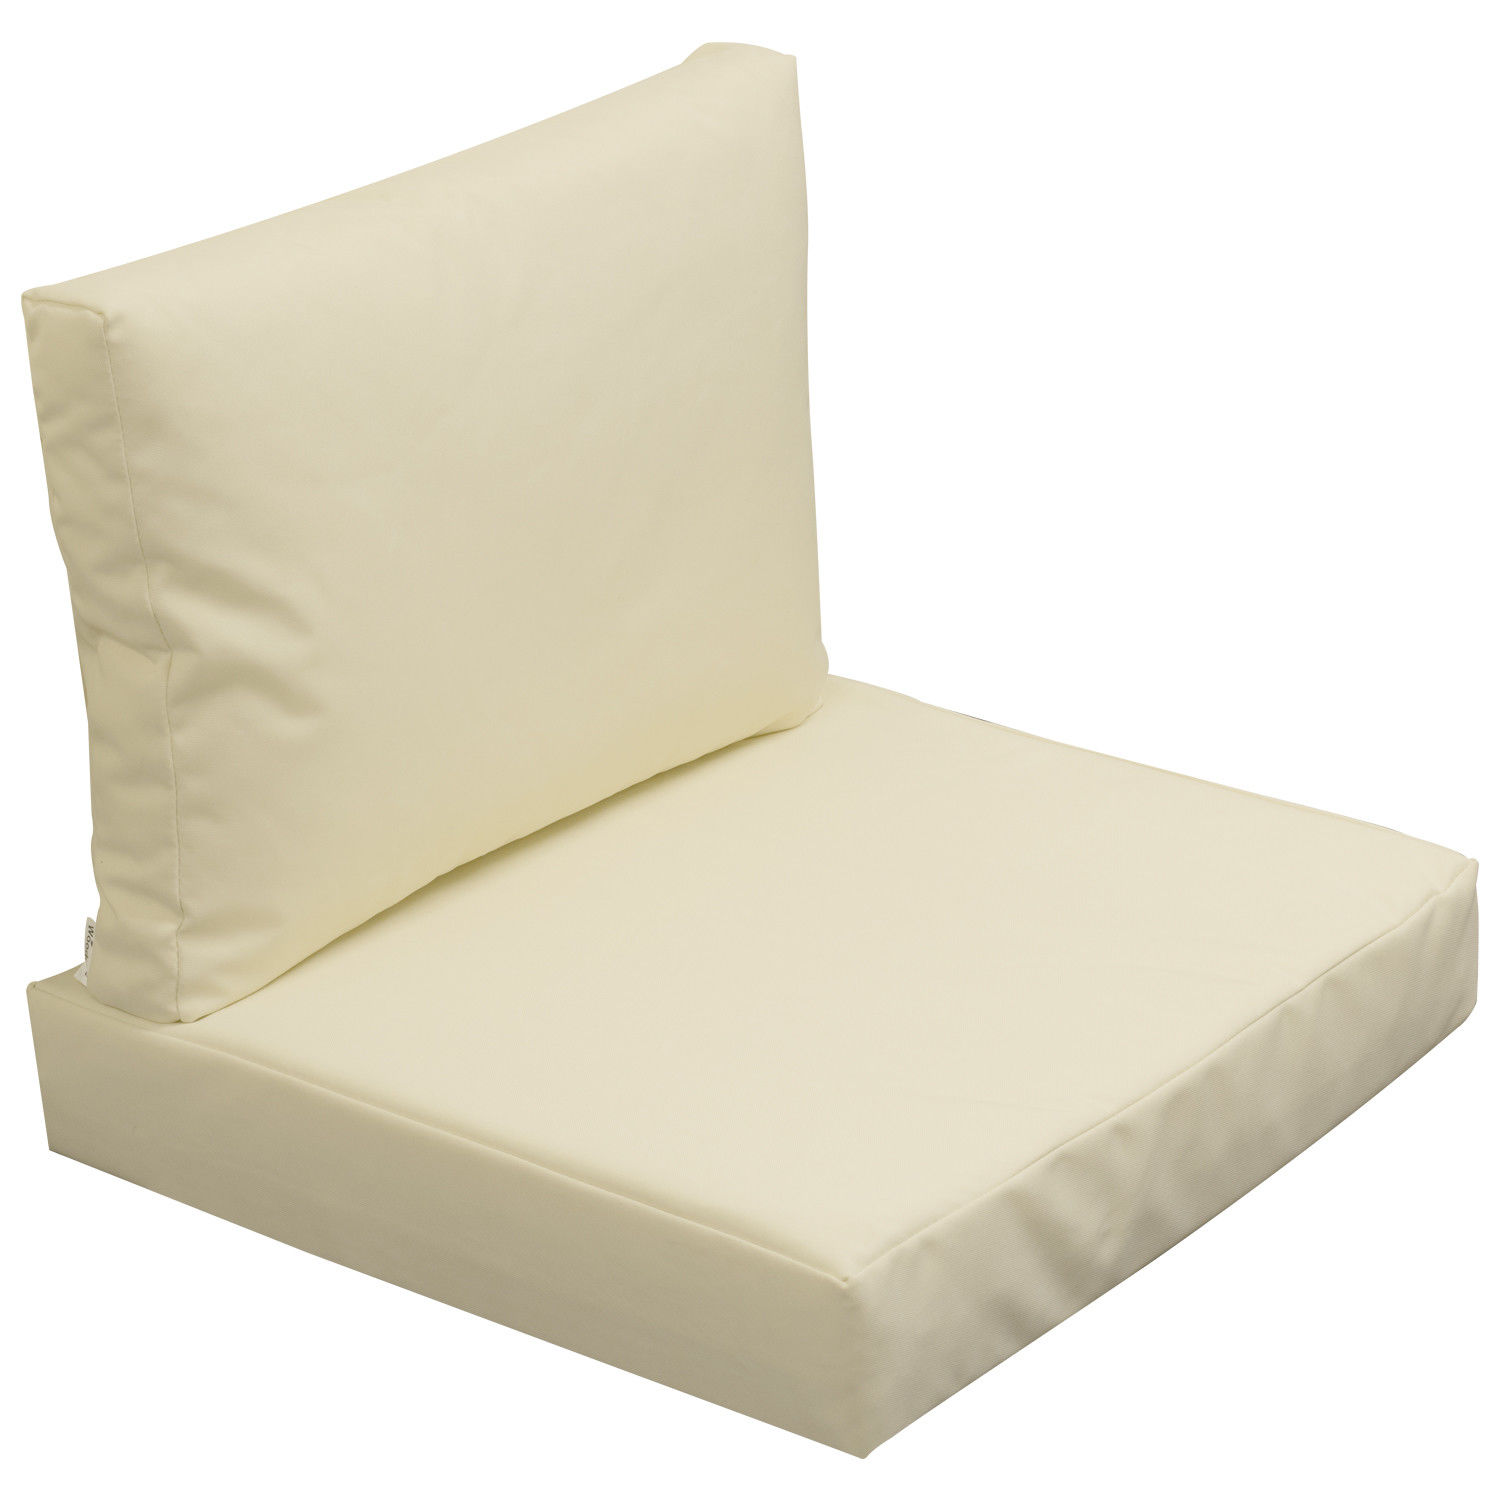 Details about Woodside Replacement Rattan Garden Patio Furniture Seat & Back Cushions